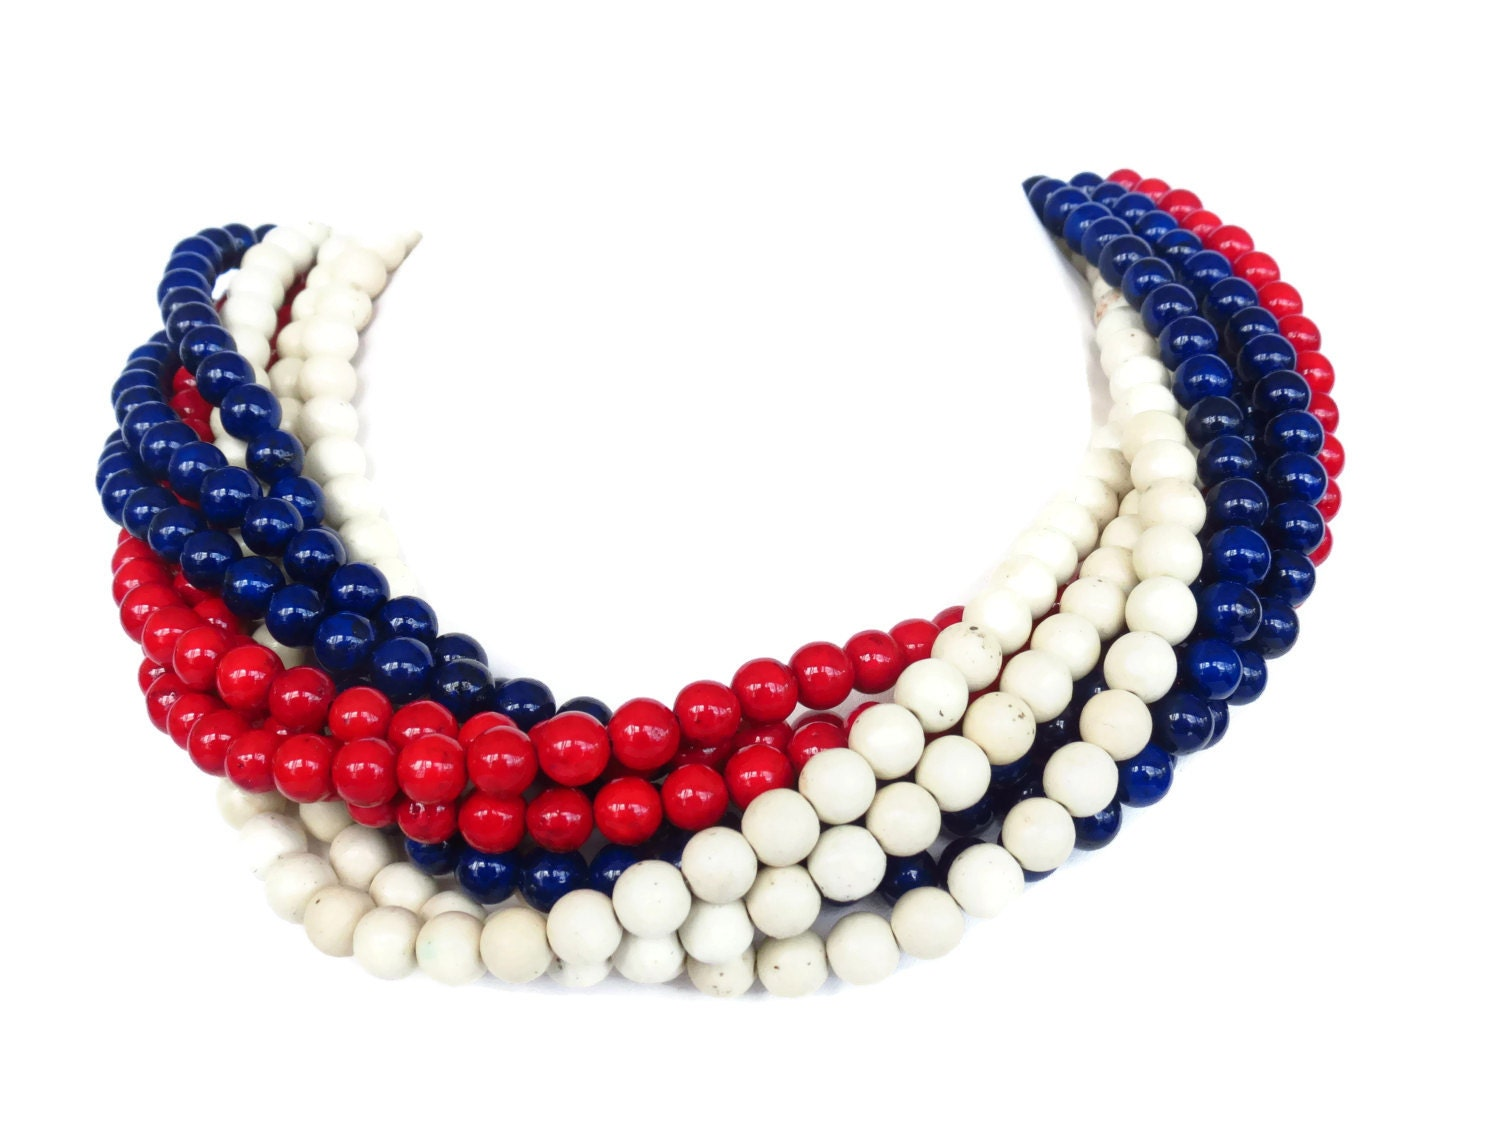 patriotic colors 4th of july flag by